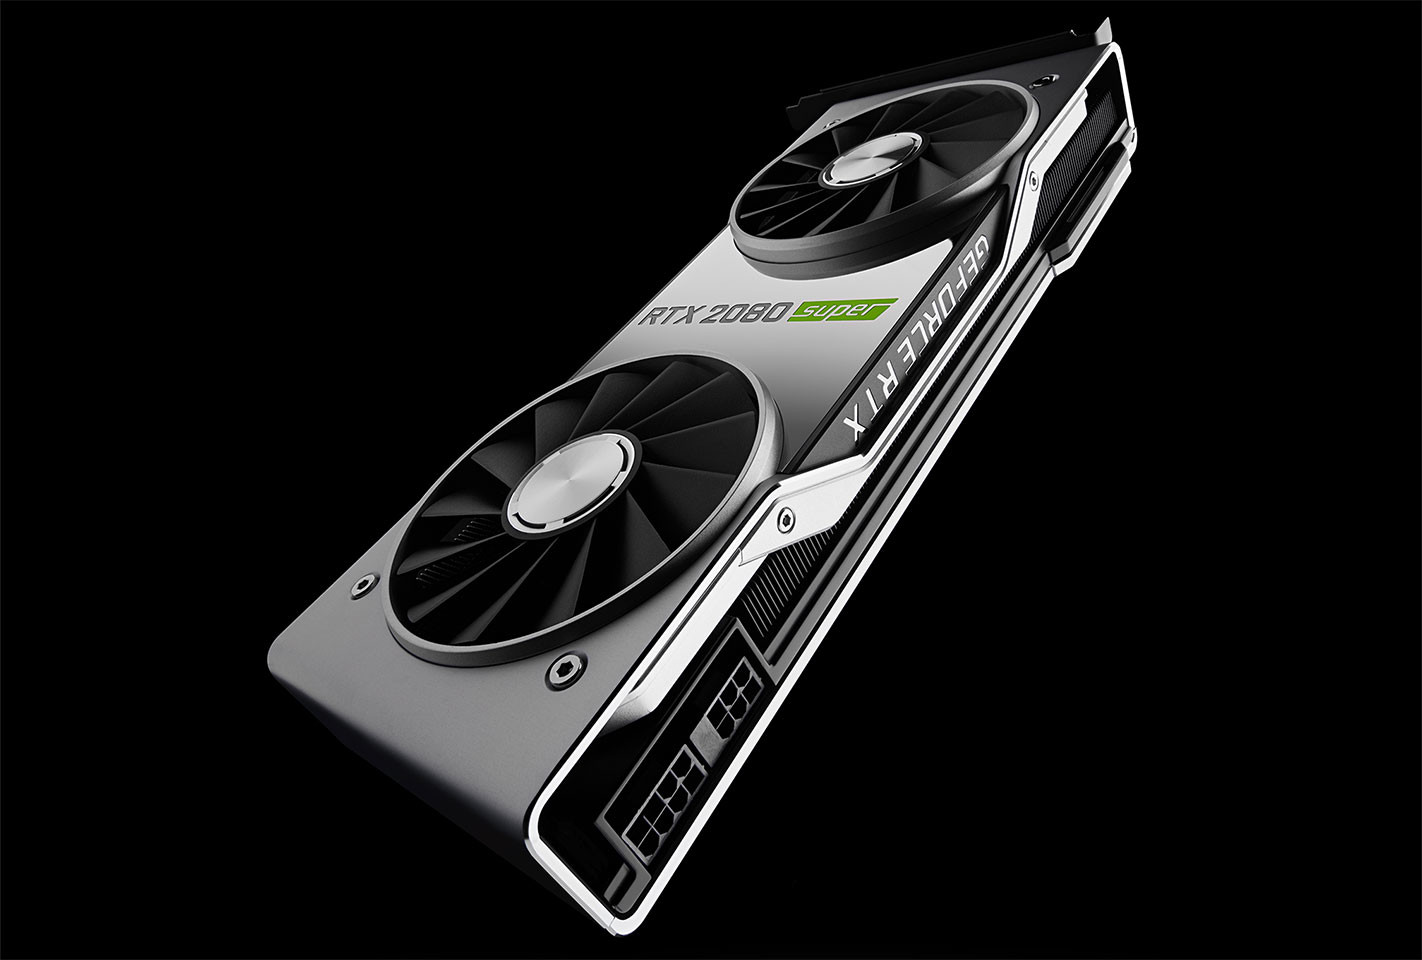 NVIDIA GeForce RTX 2080 Super Features 10 Percent Faster